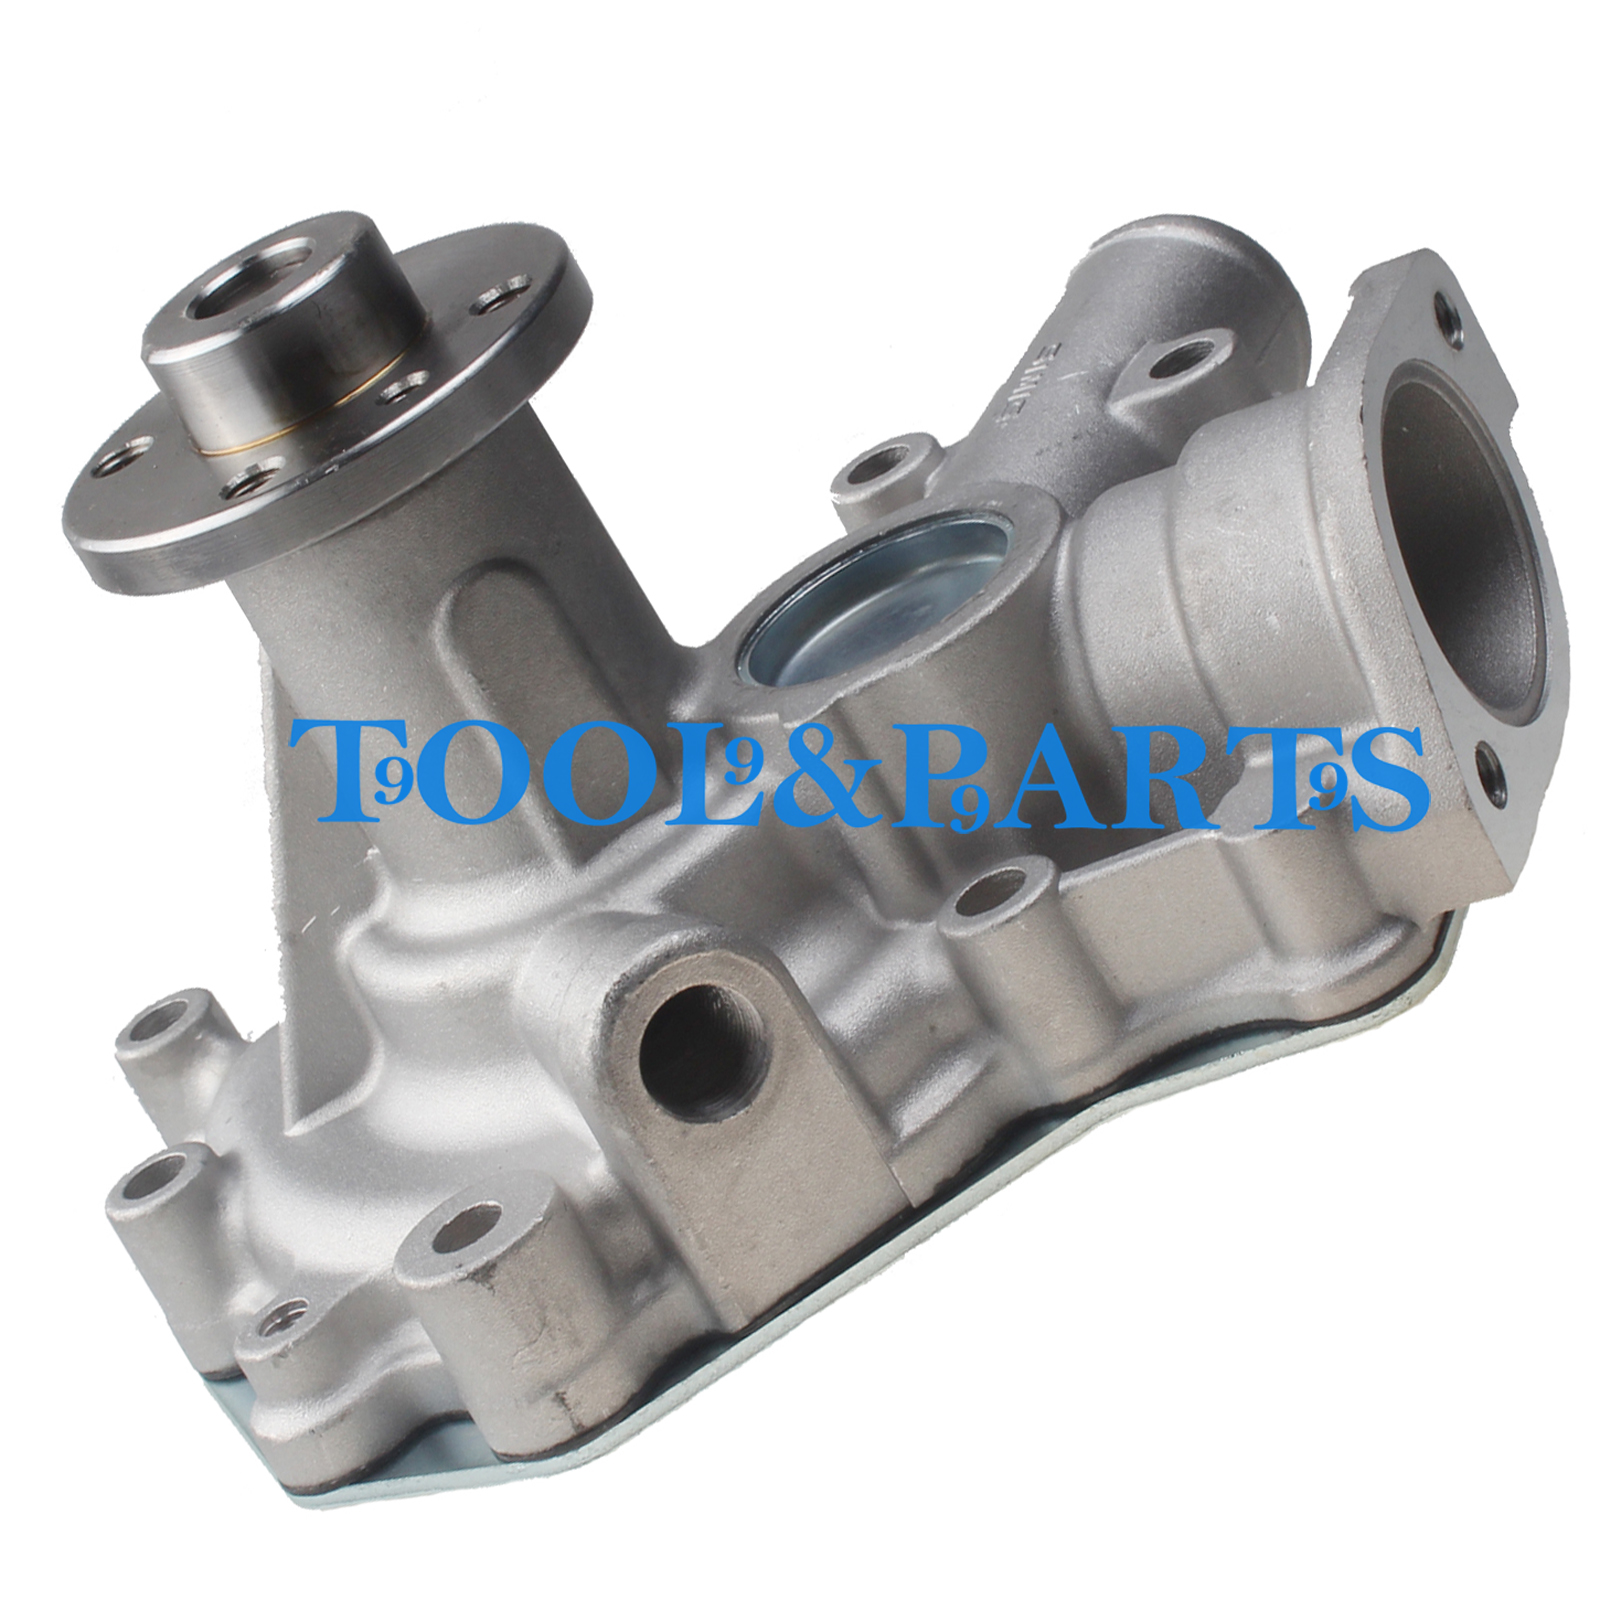 hight resolution of details about water pump 8970698820 8 97069 882 0 for isuzu 3la1 3lb1